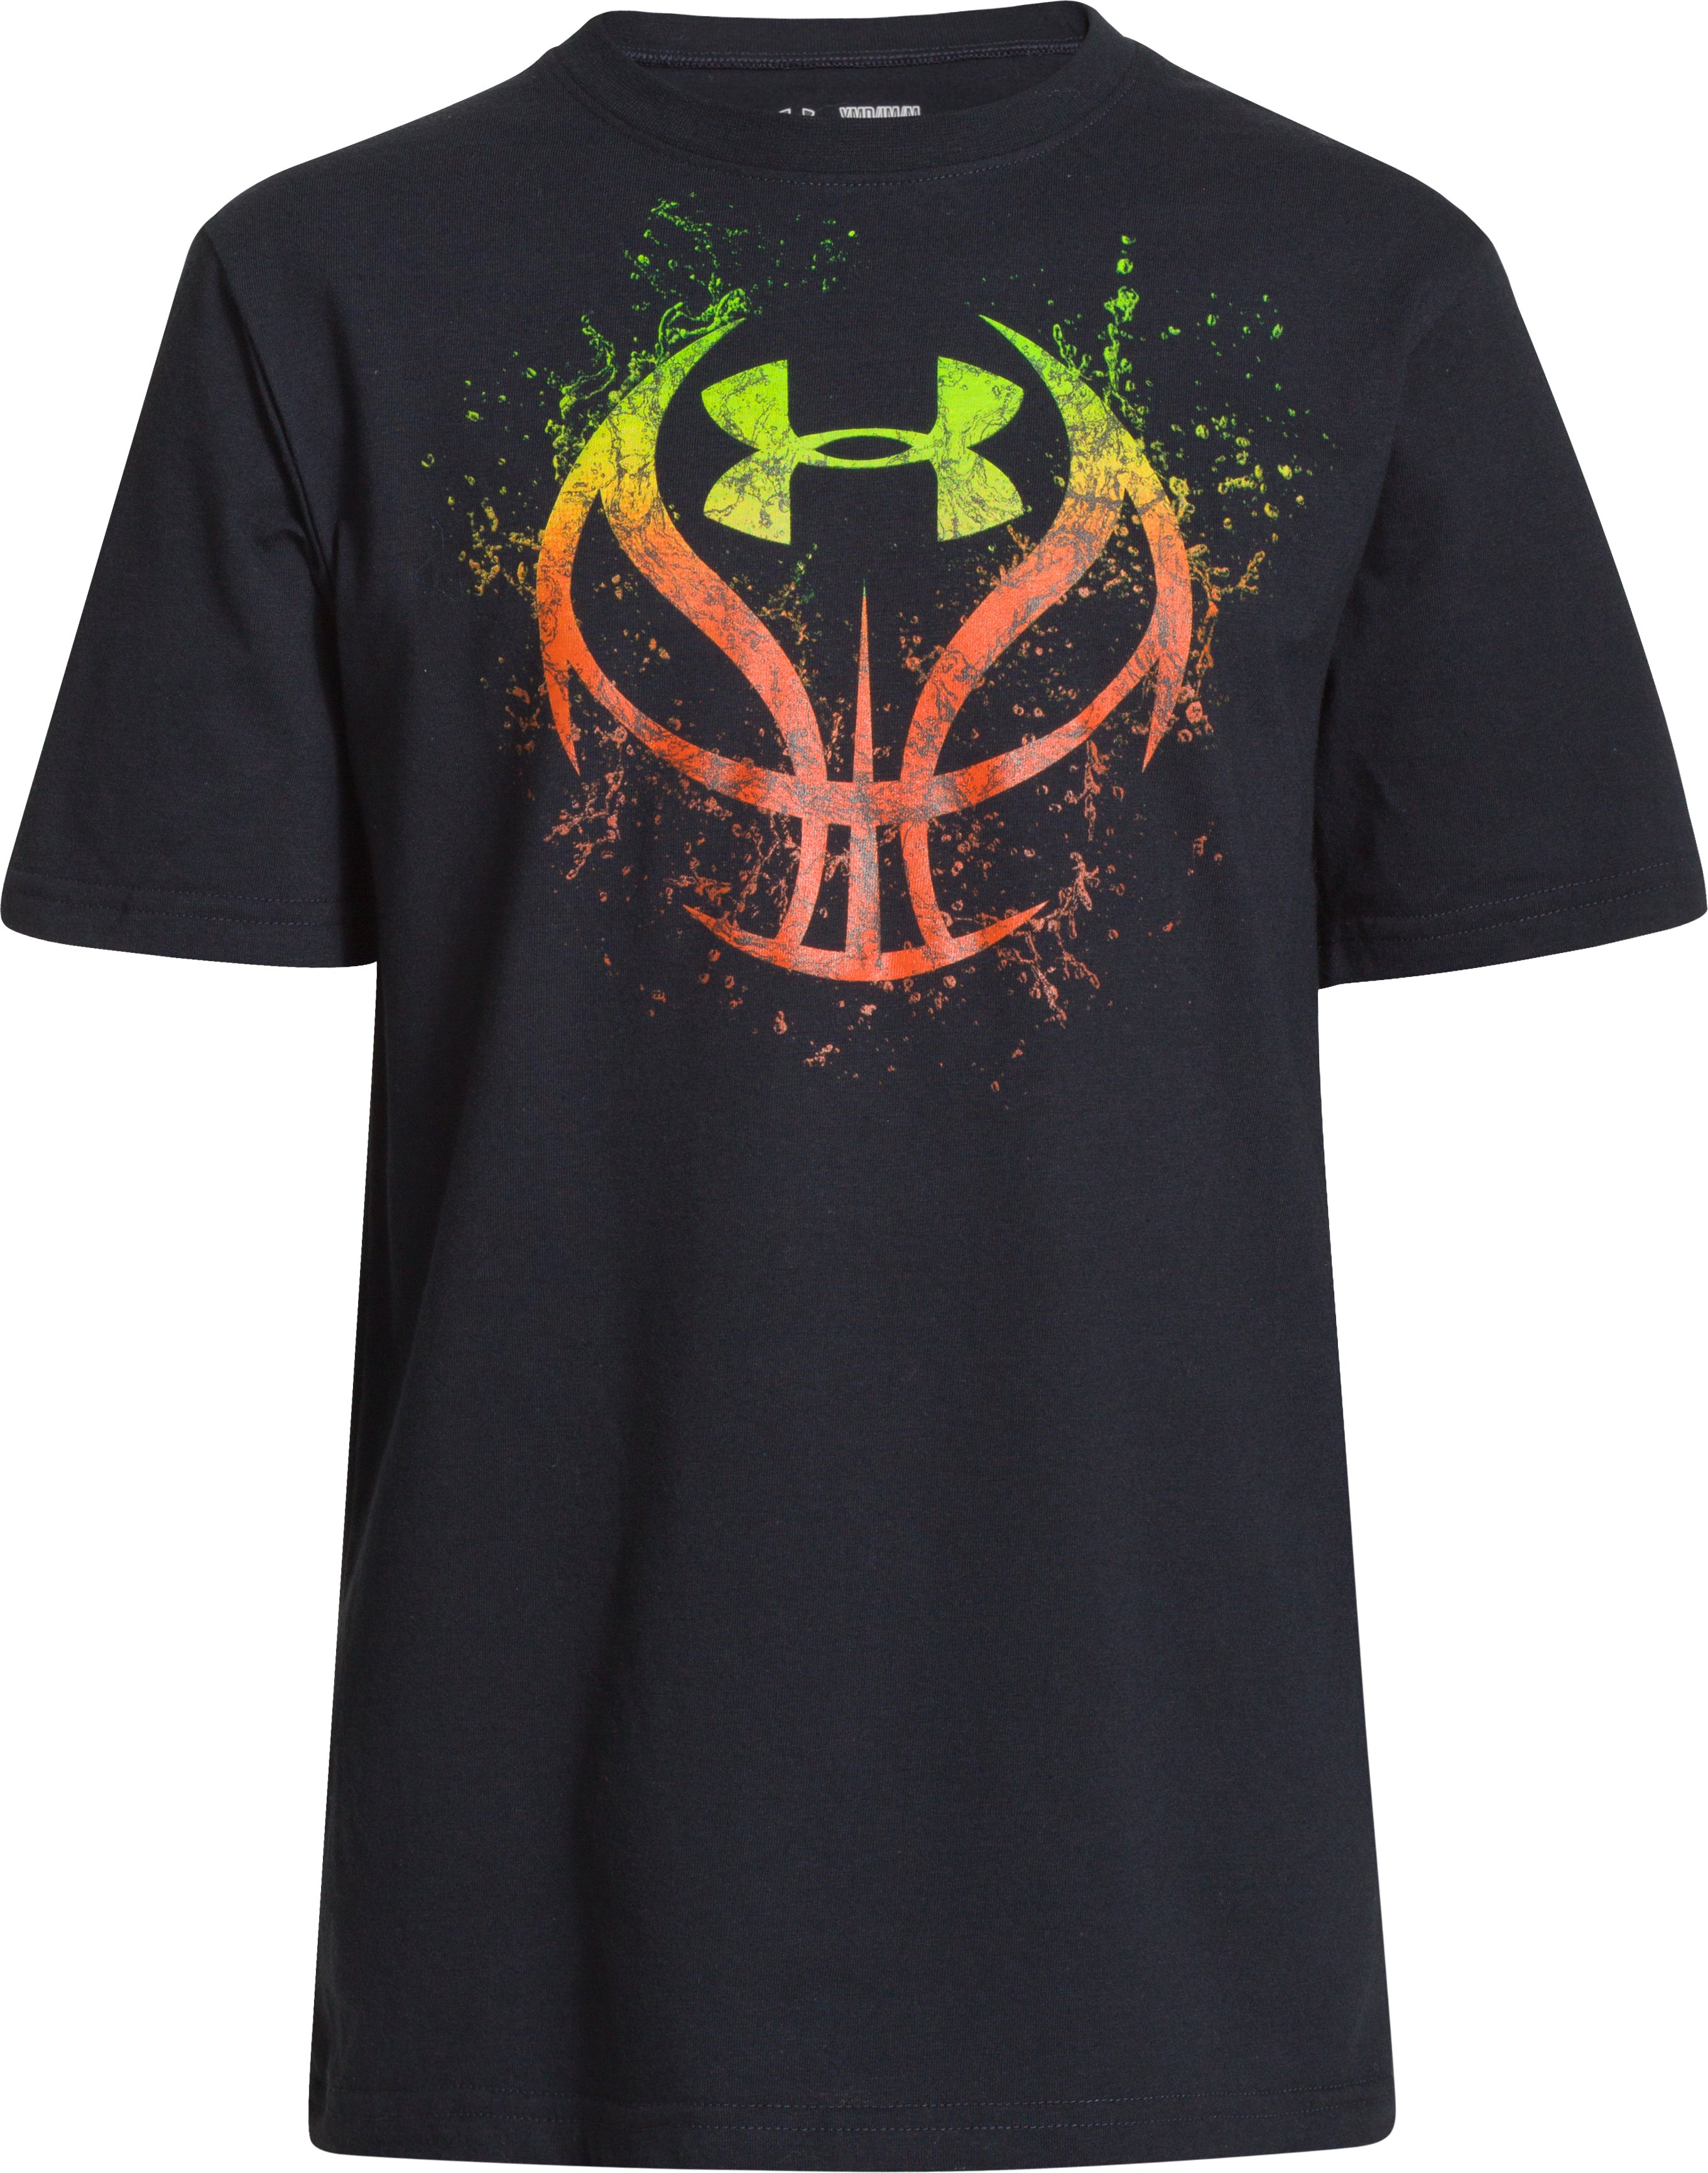 Boys' UA Basketball Splash T-Shirt, Black , zoomed image